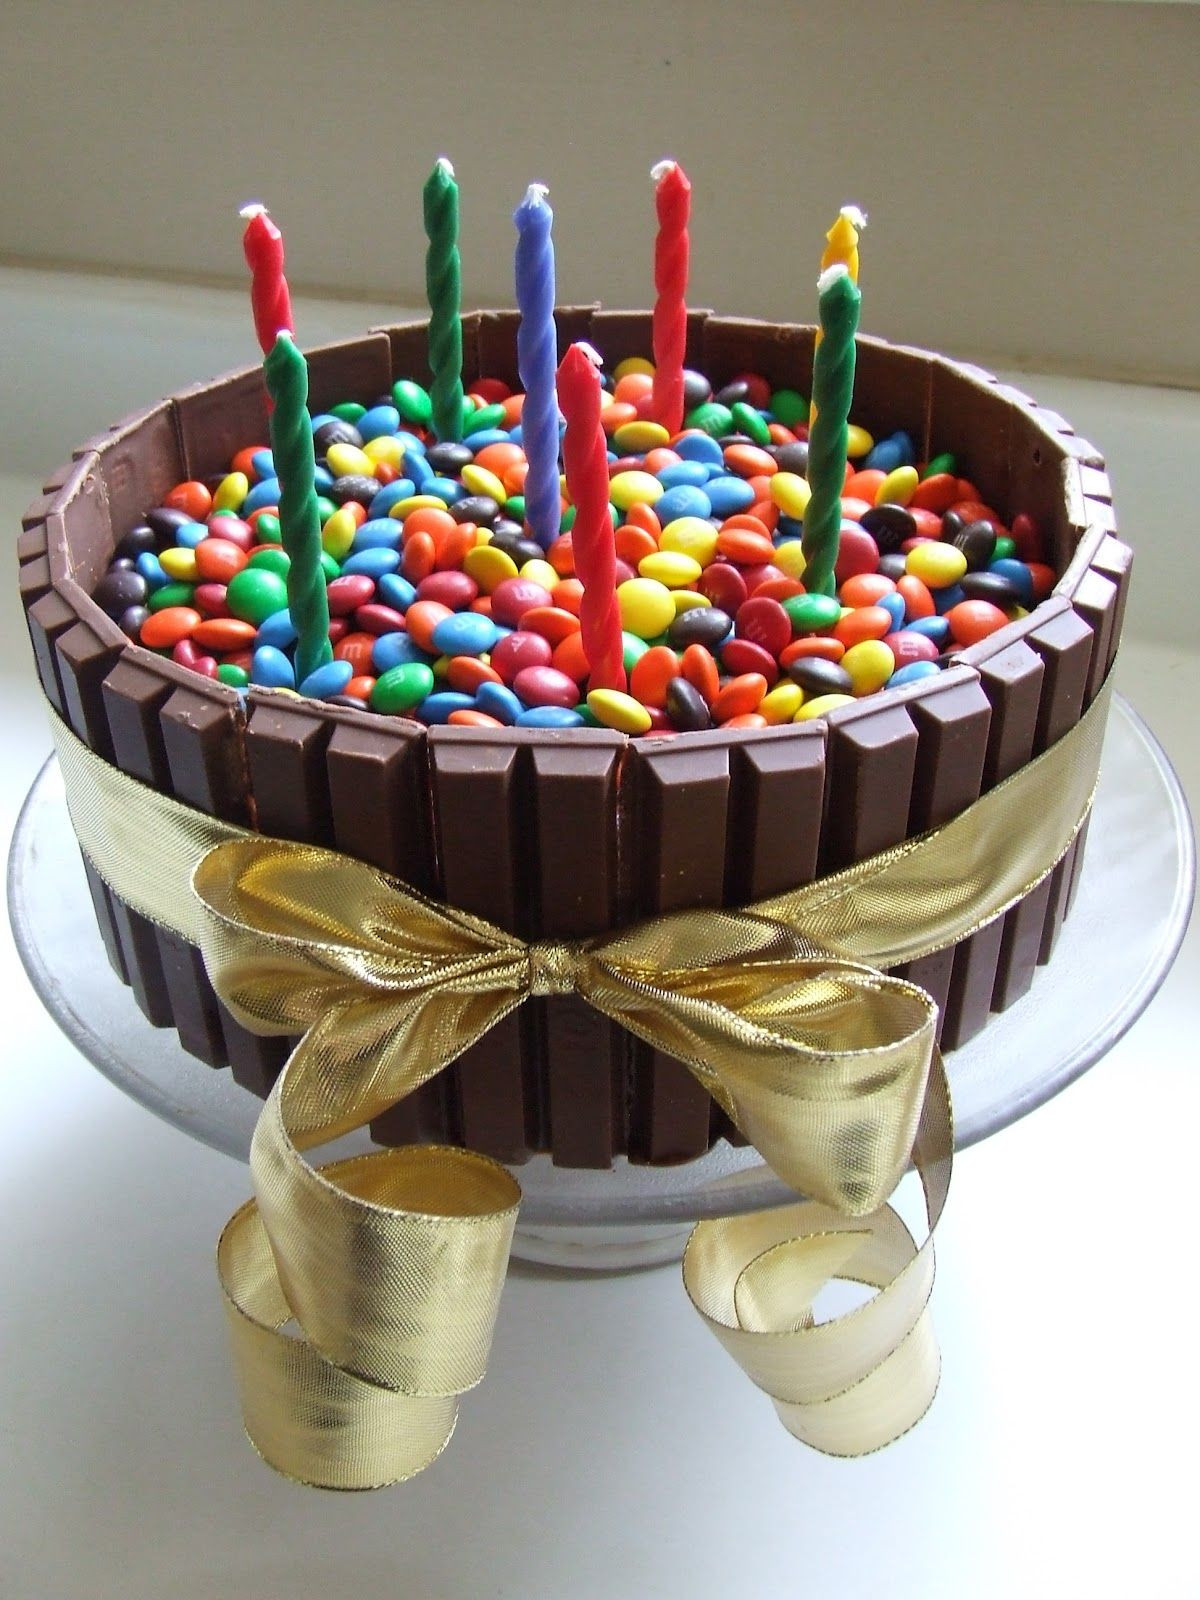 Best ideas about Birthday Cake For 13 Year Old Boy . Save or Pin Birthday Cards for Healthy 12 Year Old Birthday Party Now.